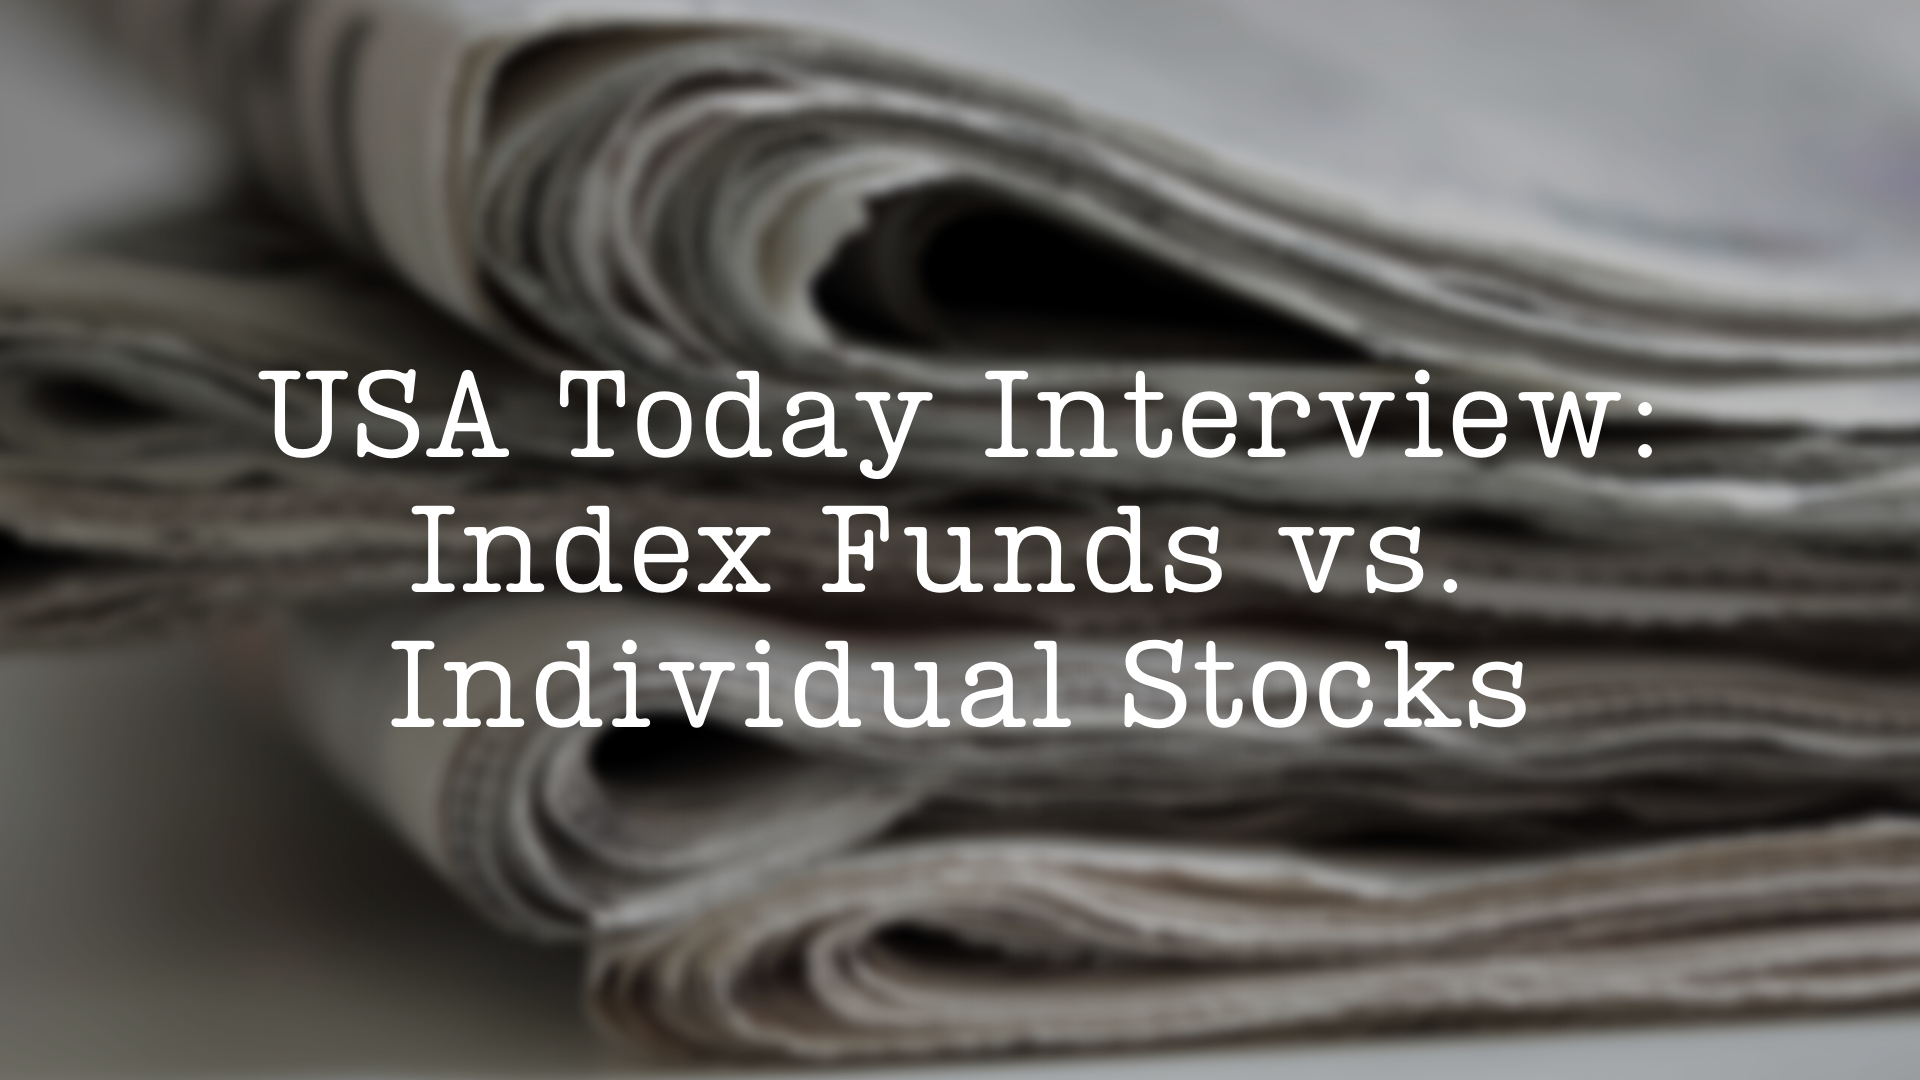 USA Today Interview: What does the Coronavirus market collapse teach us about different investing strategies?